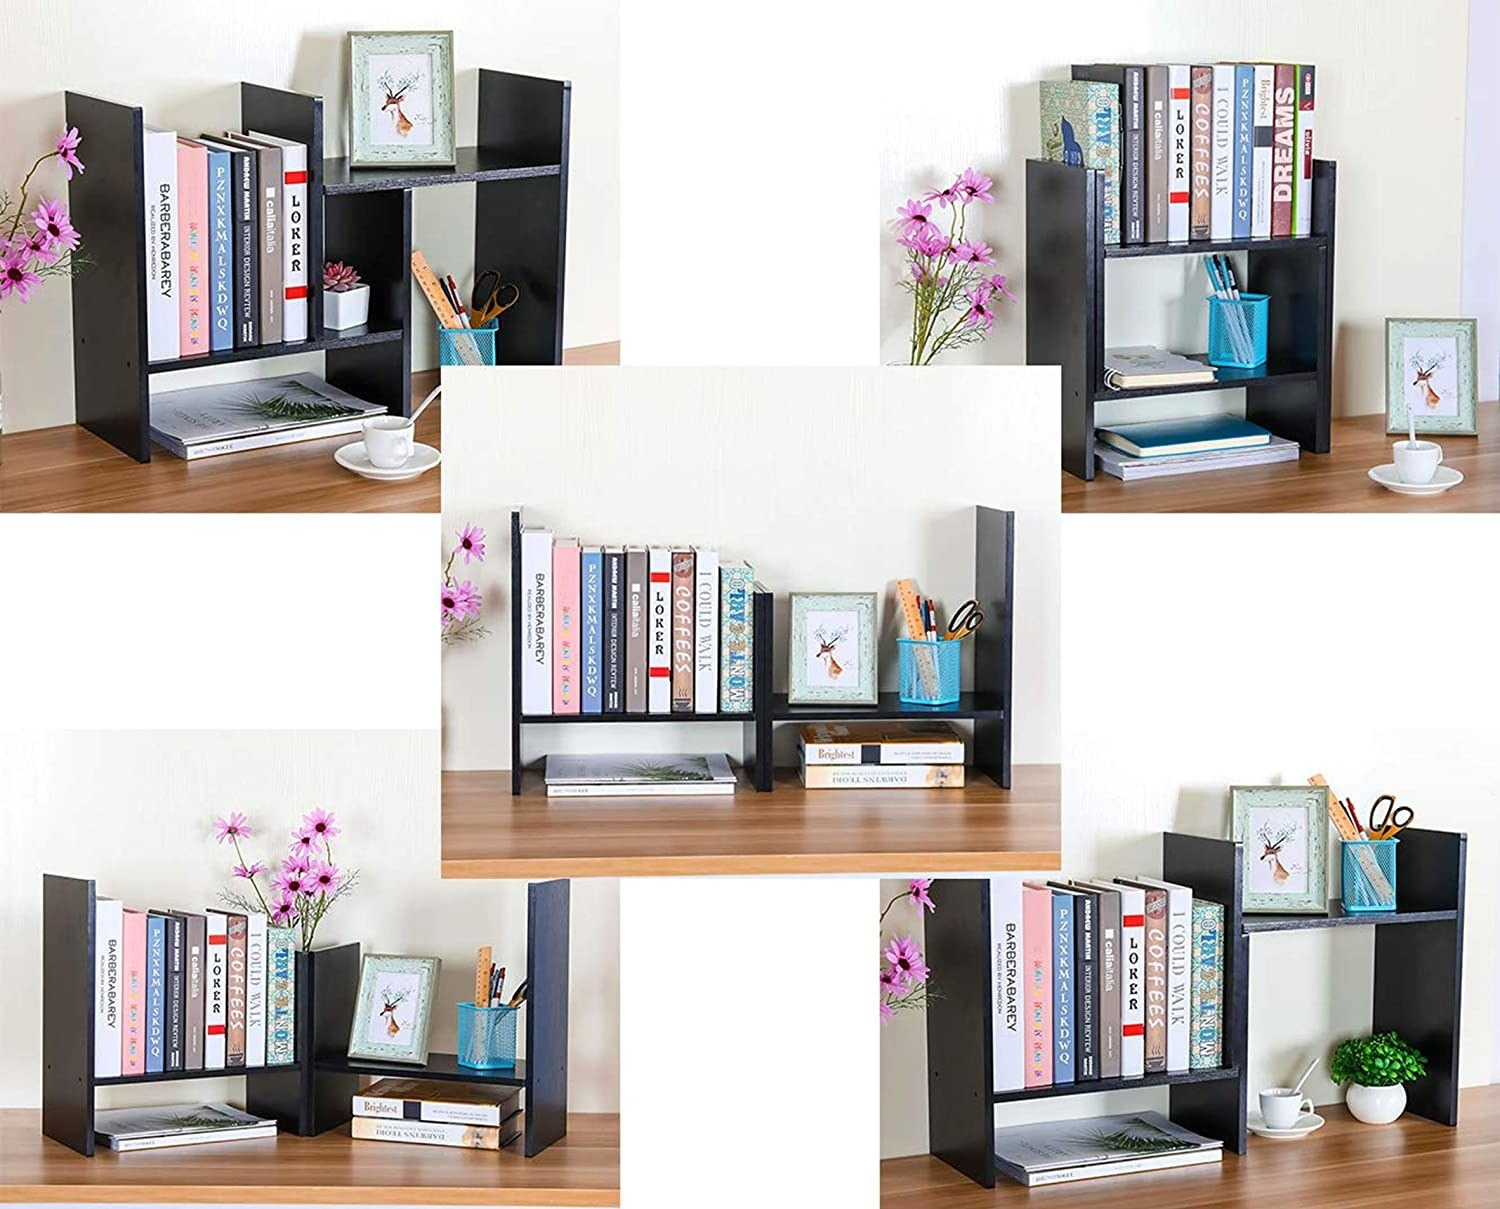 A diagram featuring five configurations of the bookshelf with office items